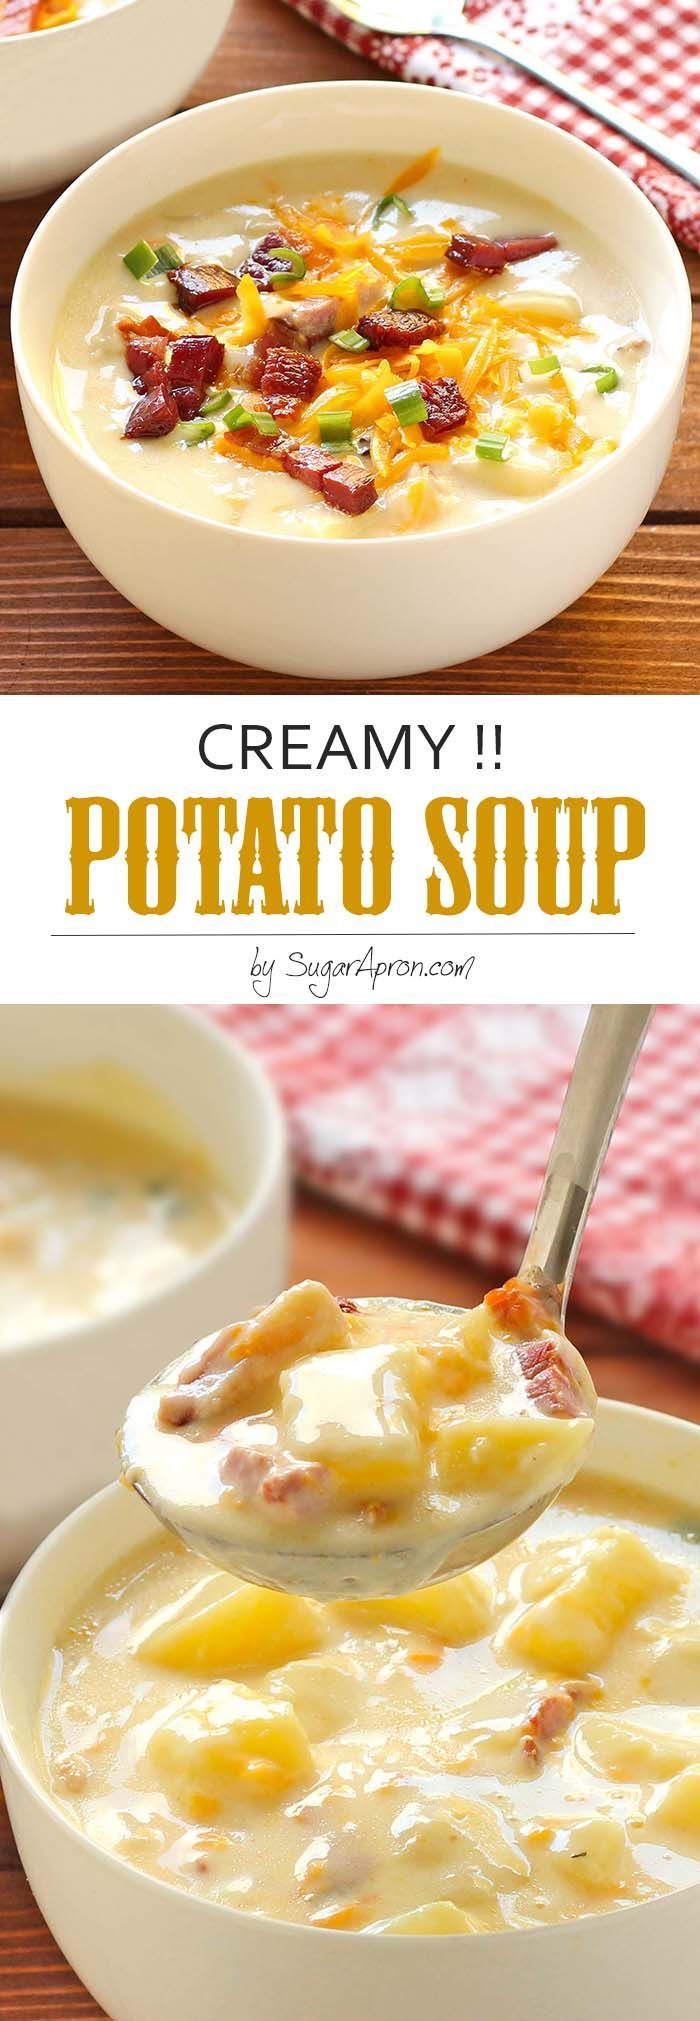 The ultimate in comfort foods. Thick, rich, creamy potato soup thats ready in less than an hour, any night you want it. YES. Sure to warm your heart from the inside on even the coldest winter night.